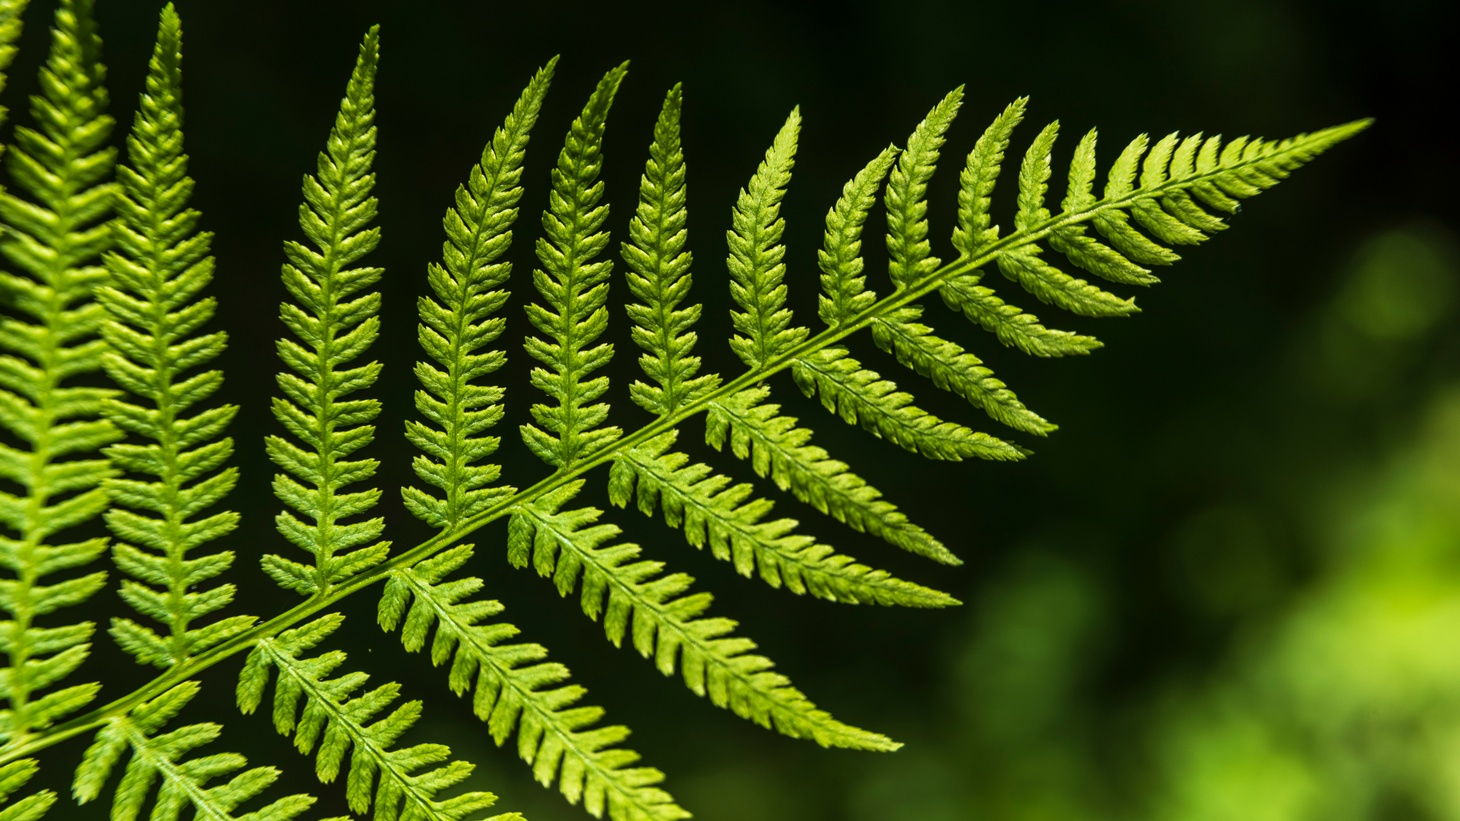 Fractal shapes in nature, from tree leaves to salt flats, affect the brain and have a soothing and calming effect, says science and nature writer Lucy Jones.